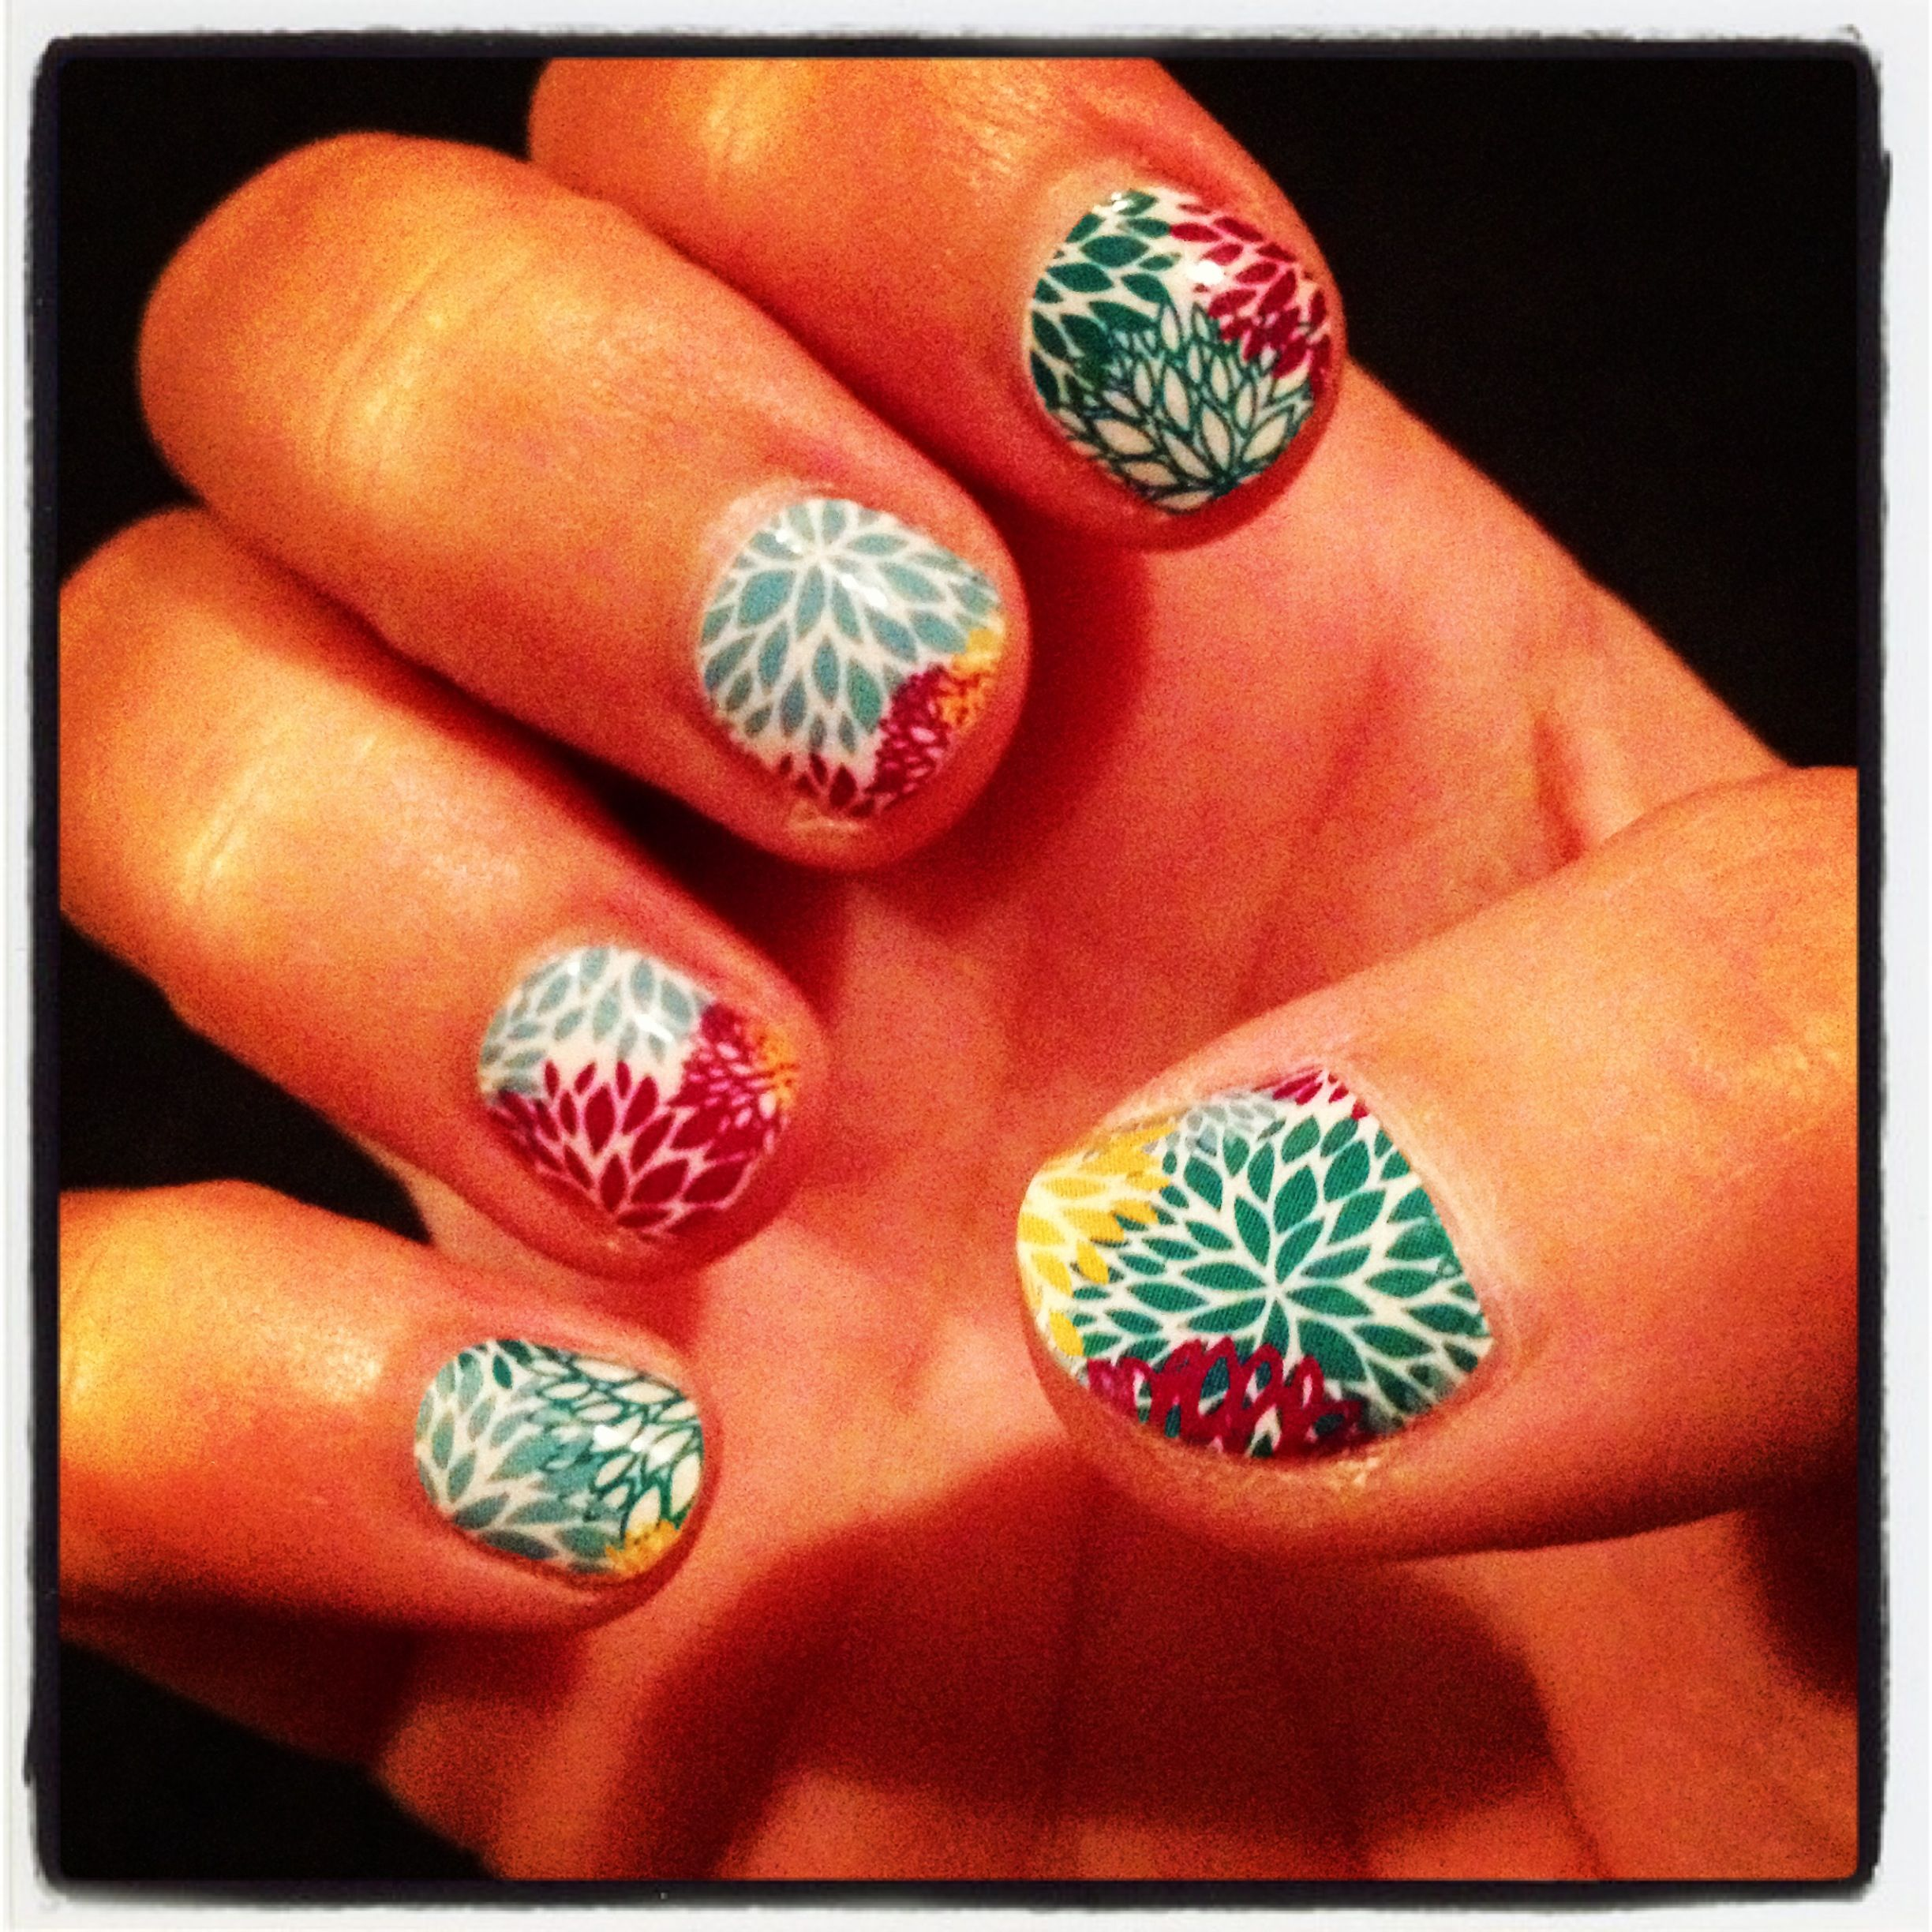 jamberry nails in puff flower